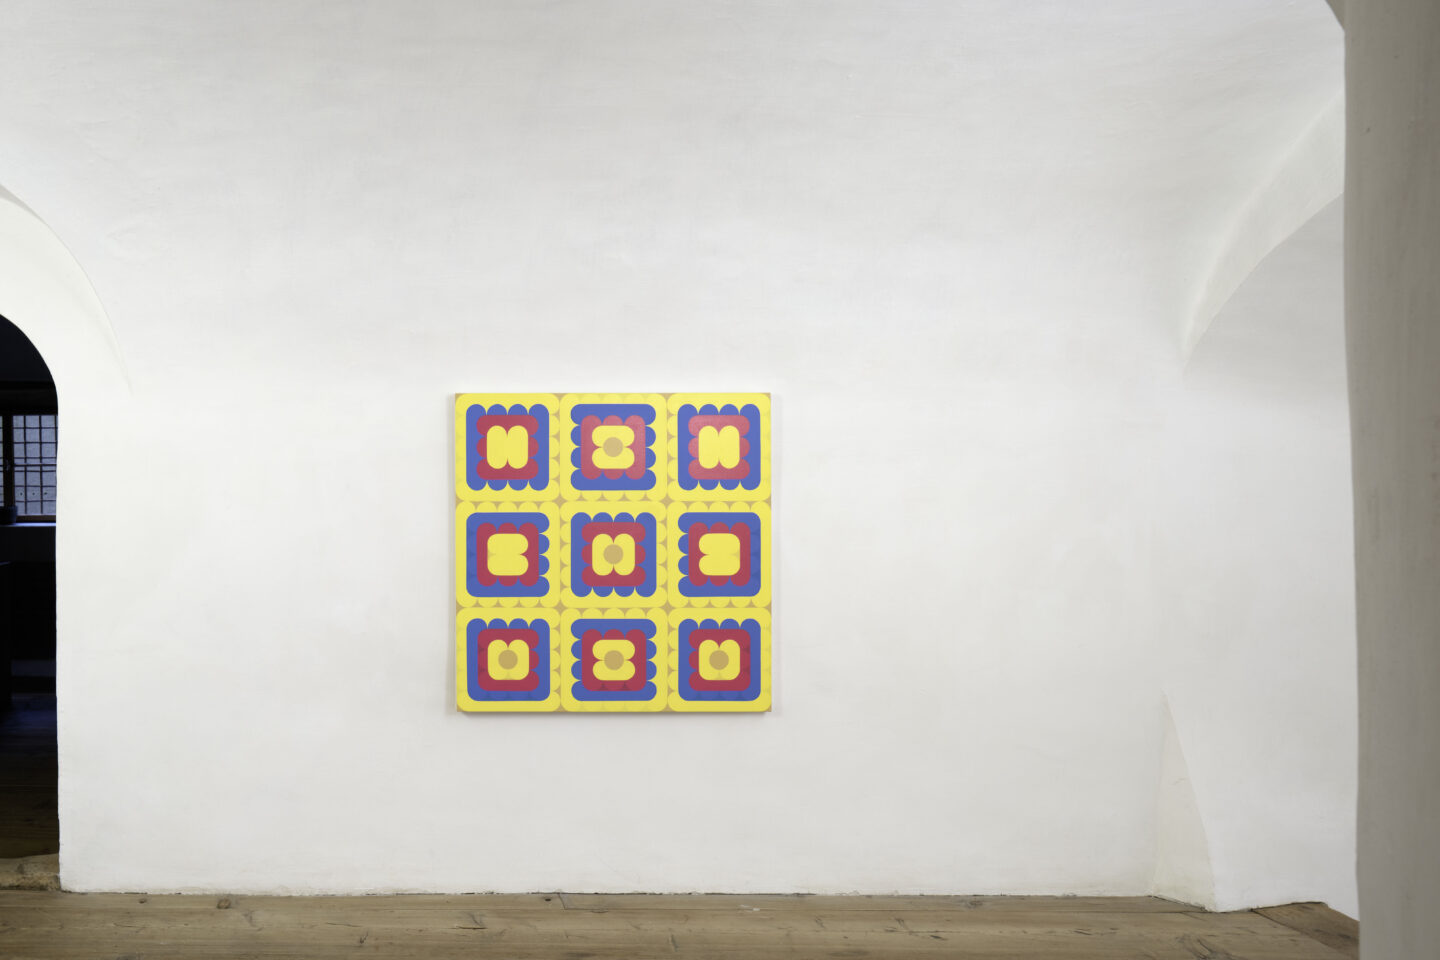 Exhibition View Dan Walsh Soloshow «AfterMath; view on Dan Walsh, Surplus, 2020, acrylic on canvas, 101.6 x 101.6 cm» at Galerie Tschudi, Zuoz, 2020 / Photo: Ralph Feiner, Malans / Courtesy: the artist and Galerie Tschudi